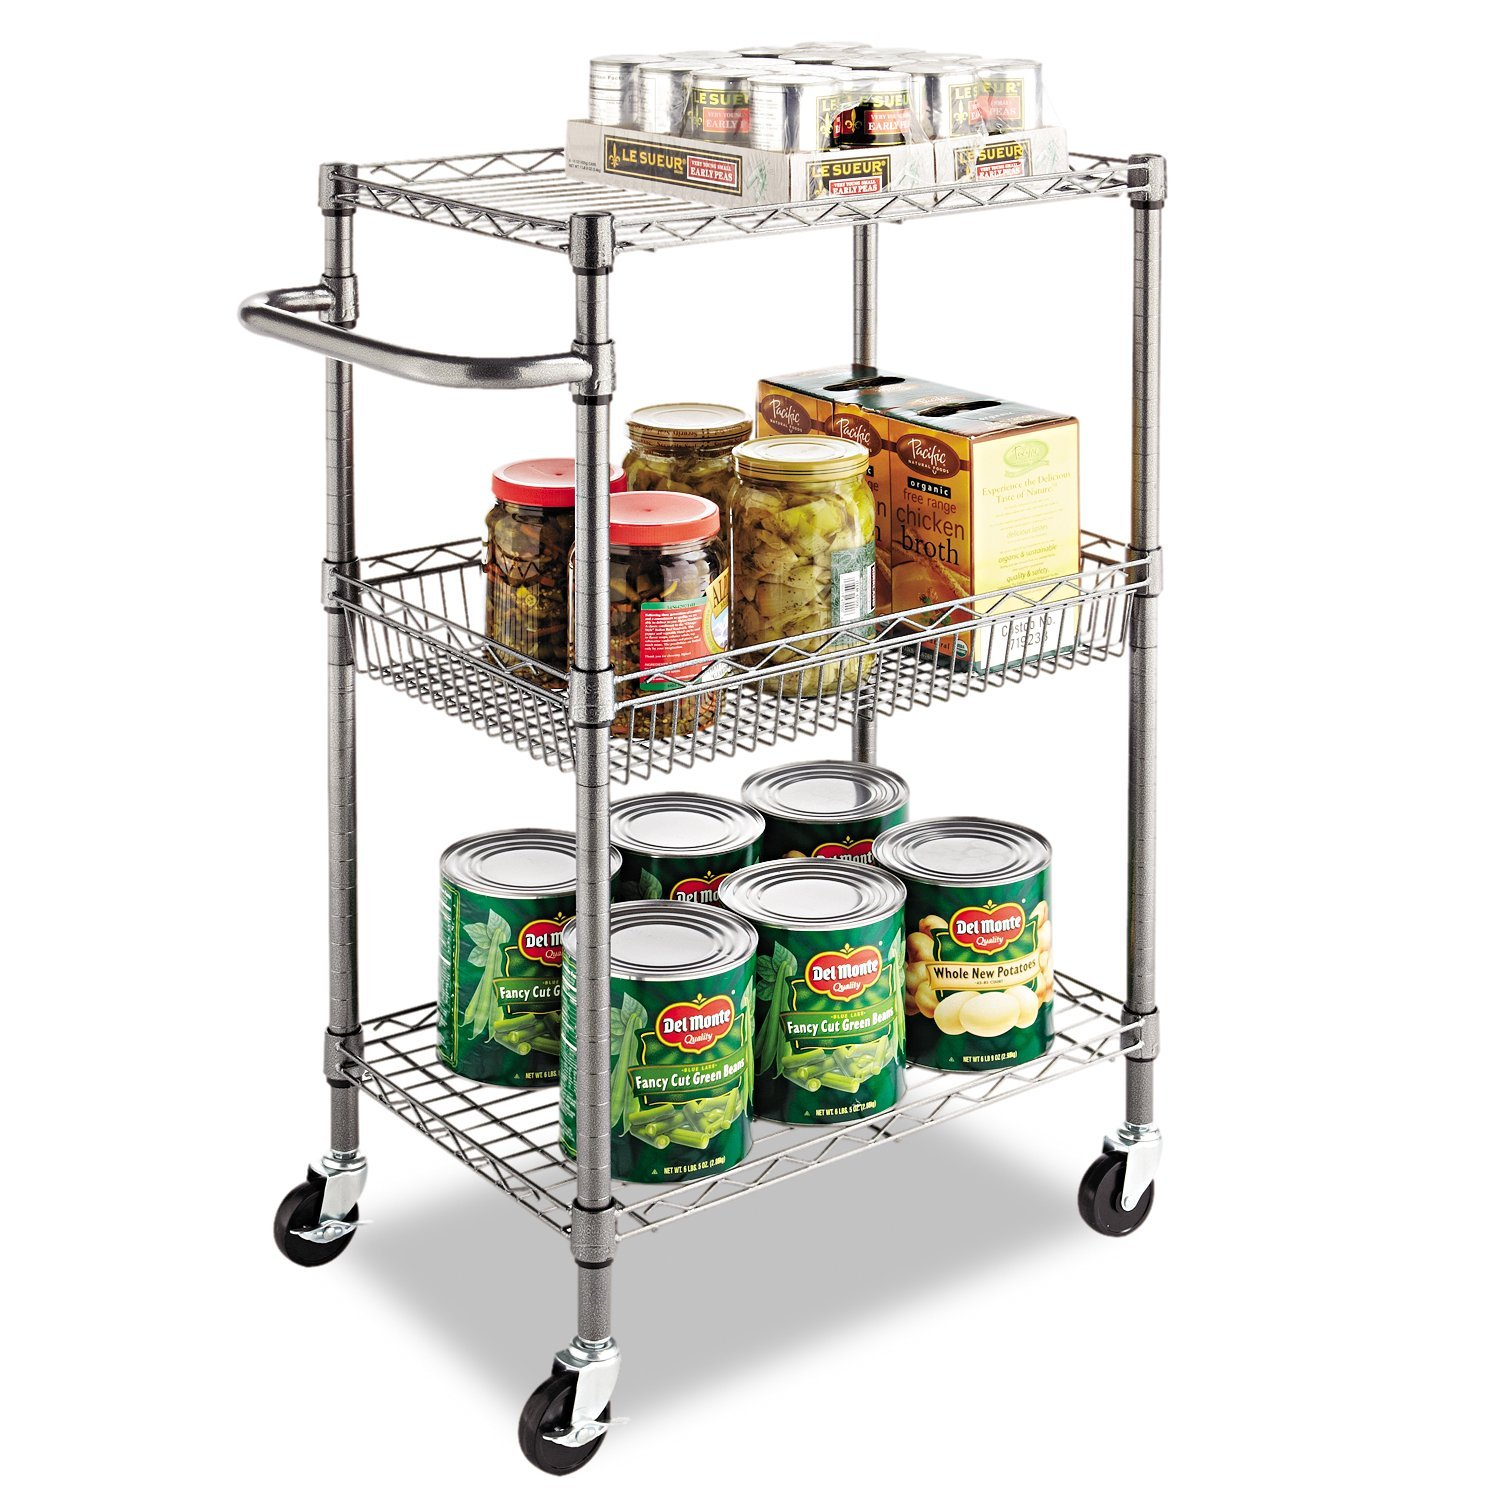 amazon com alera 3 tier wire rolling cart 3 tier wire rolling amazon com alera 3 tier wire rolling cart 3 tier wire rolling cart 28w x 16d x 39h black anthracite kitchen dining